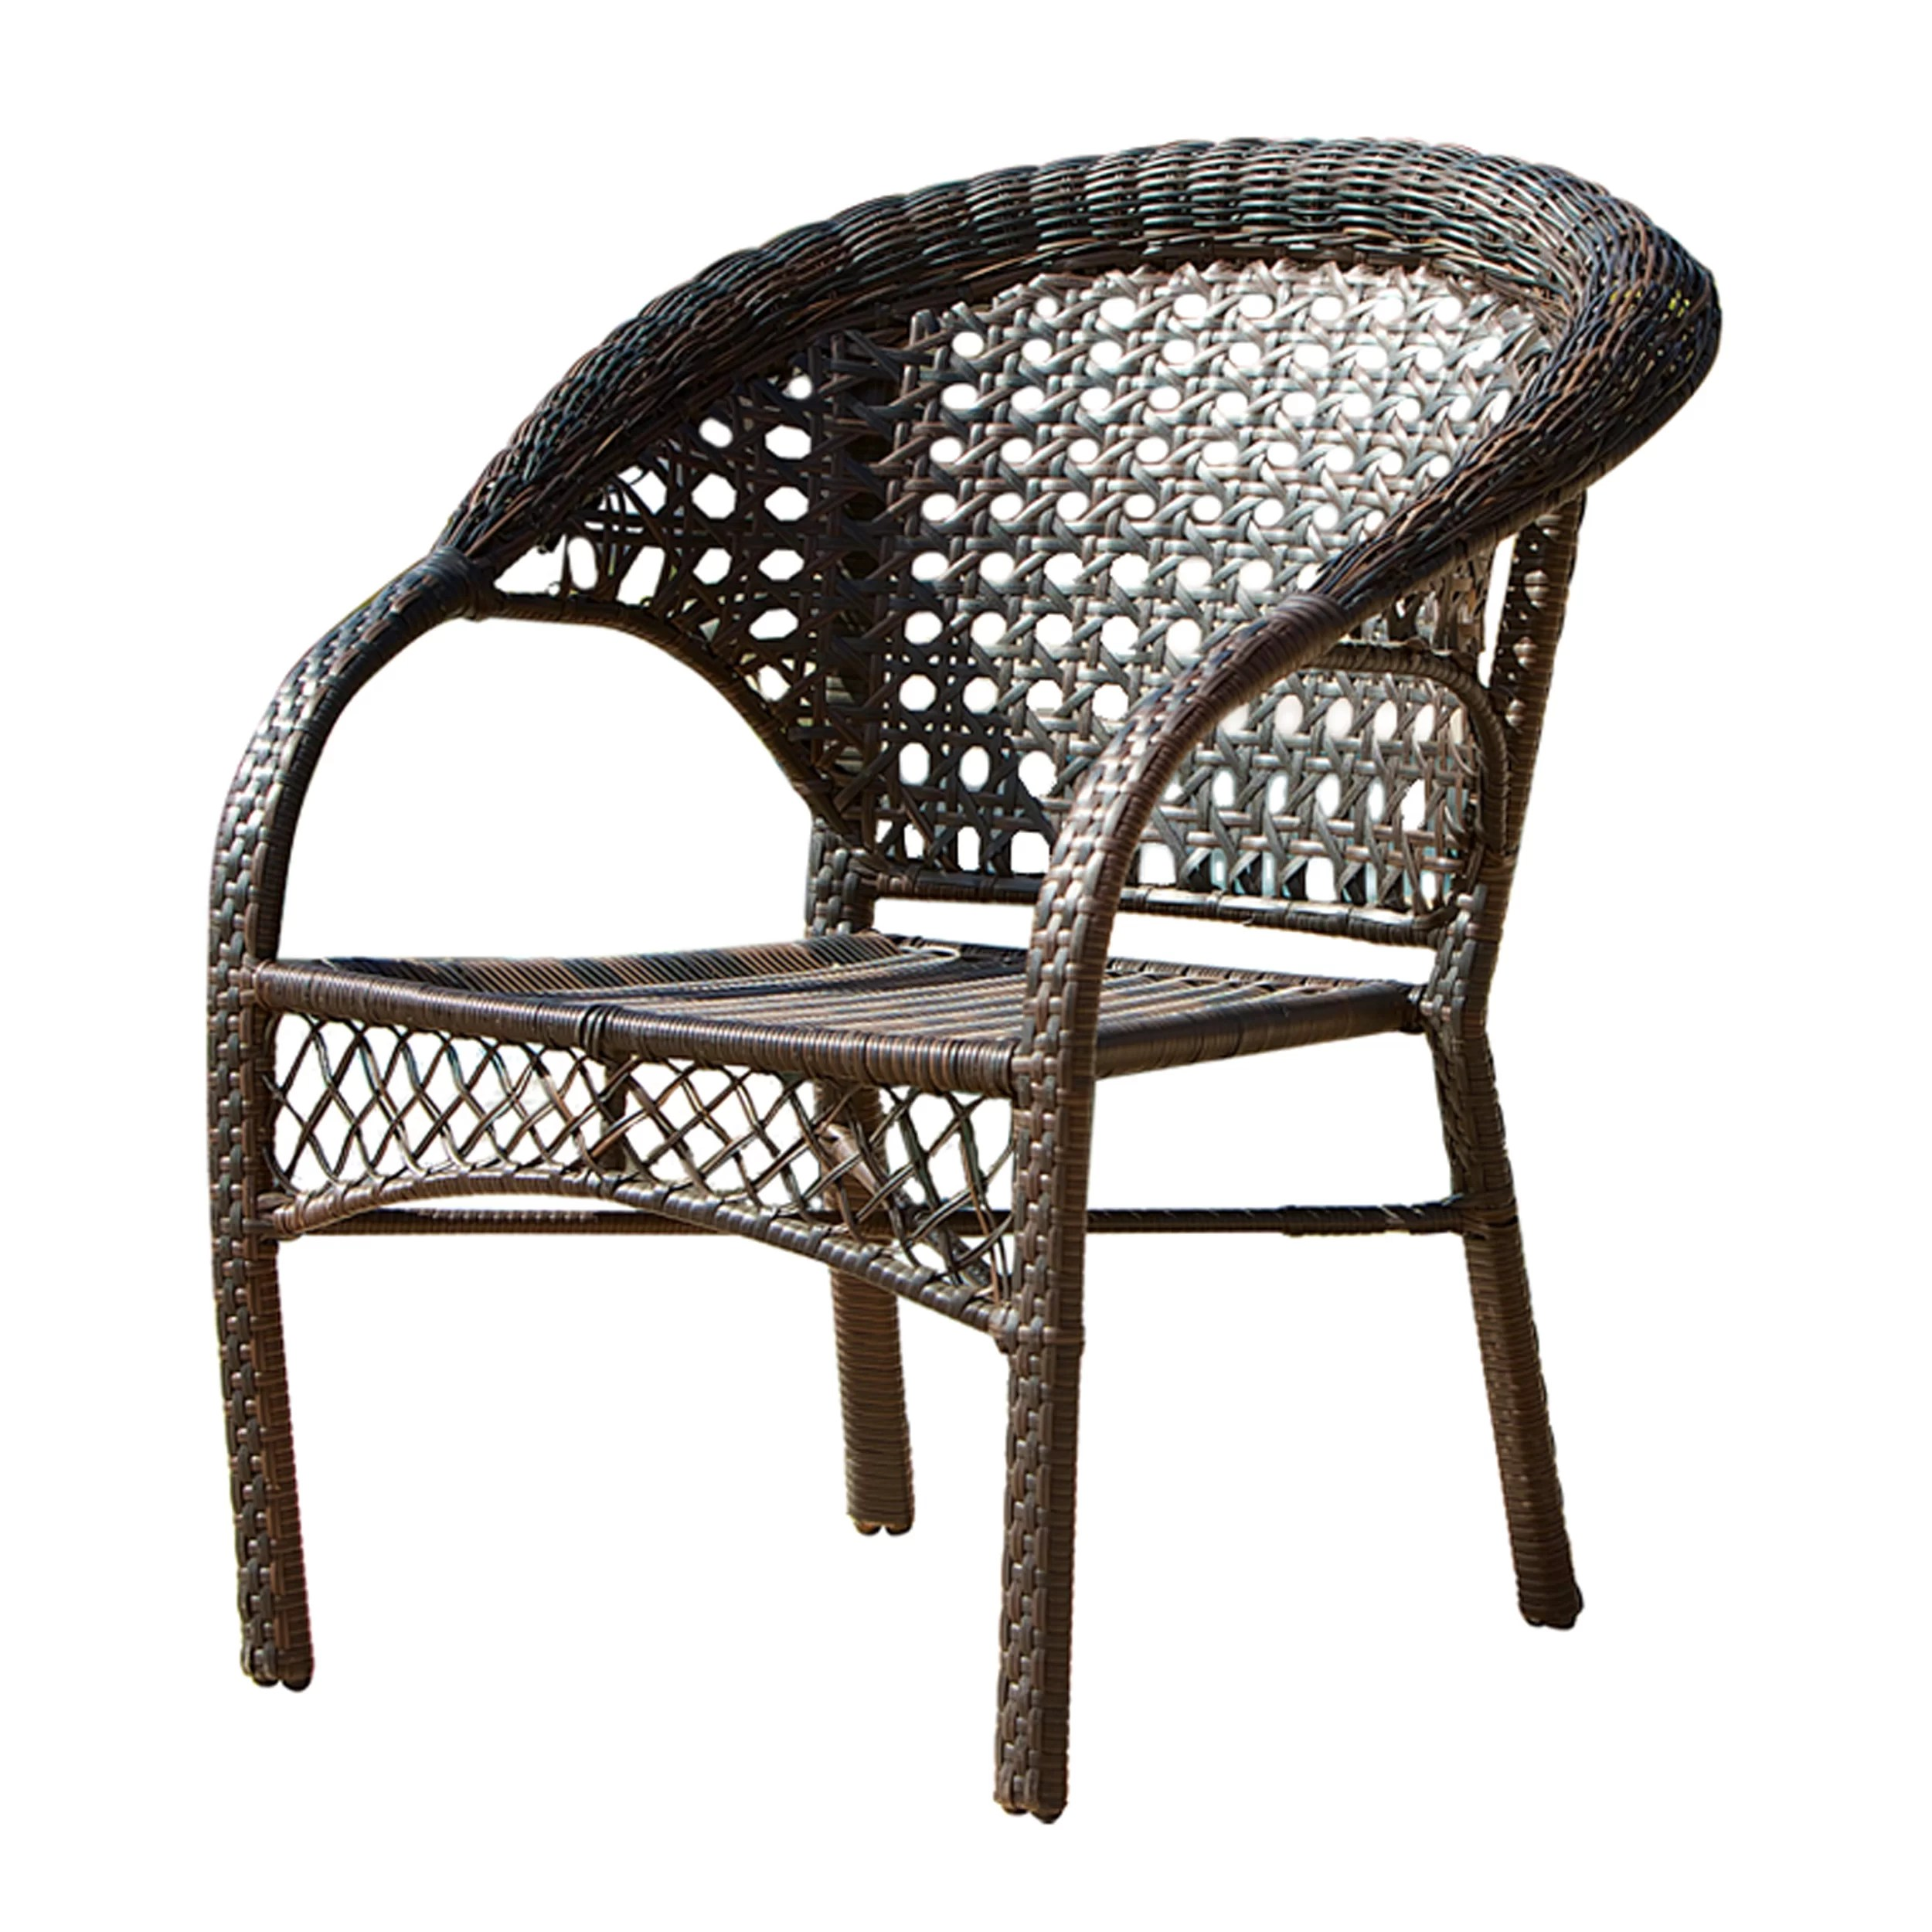 Rattan Outdoor Chairs Home Loft Concepts Darlington Outdoor Wicker Chairs